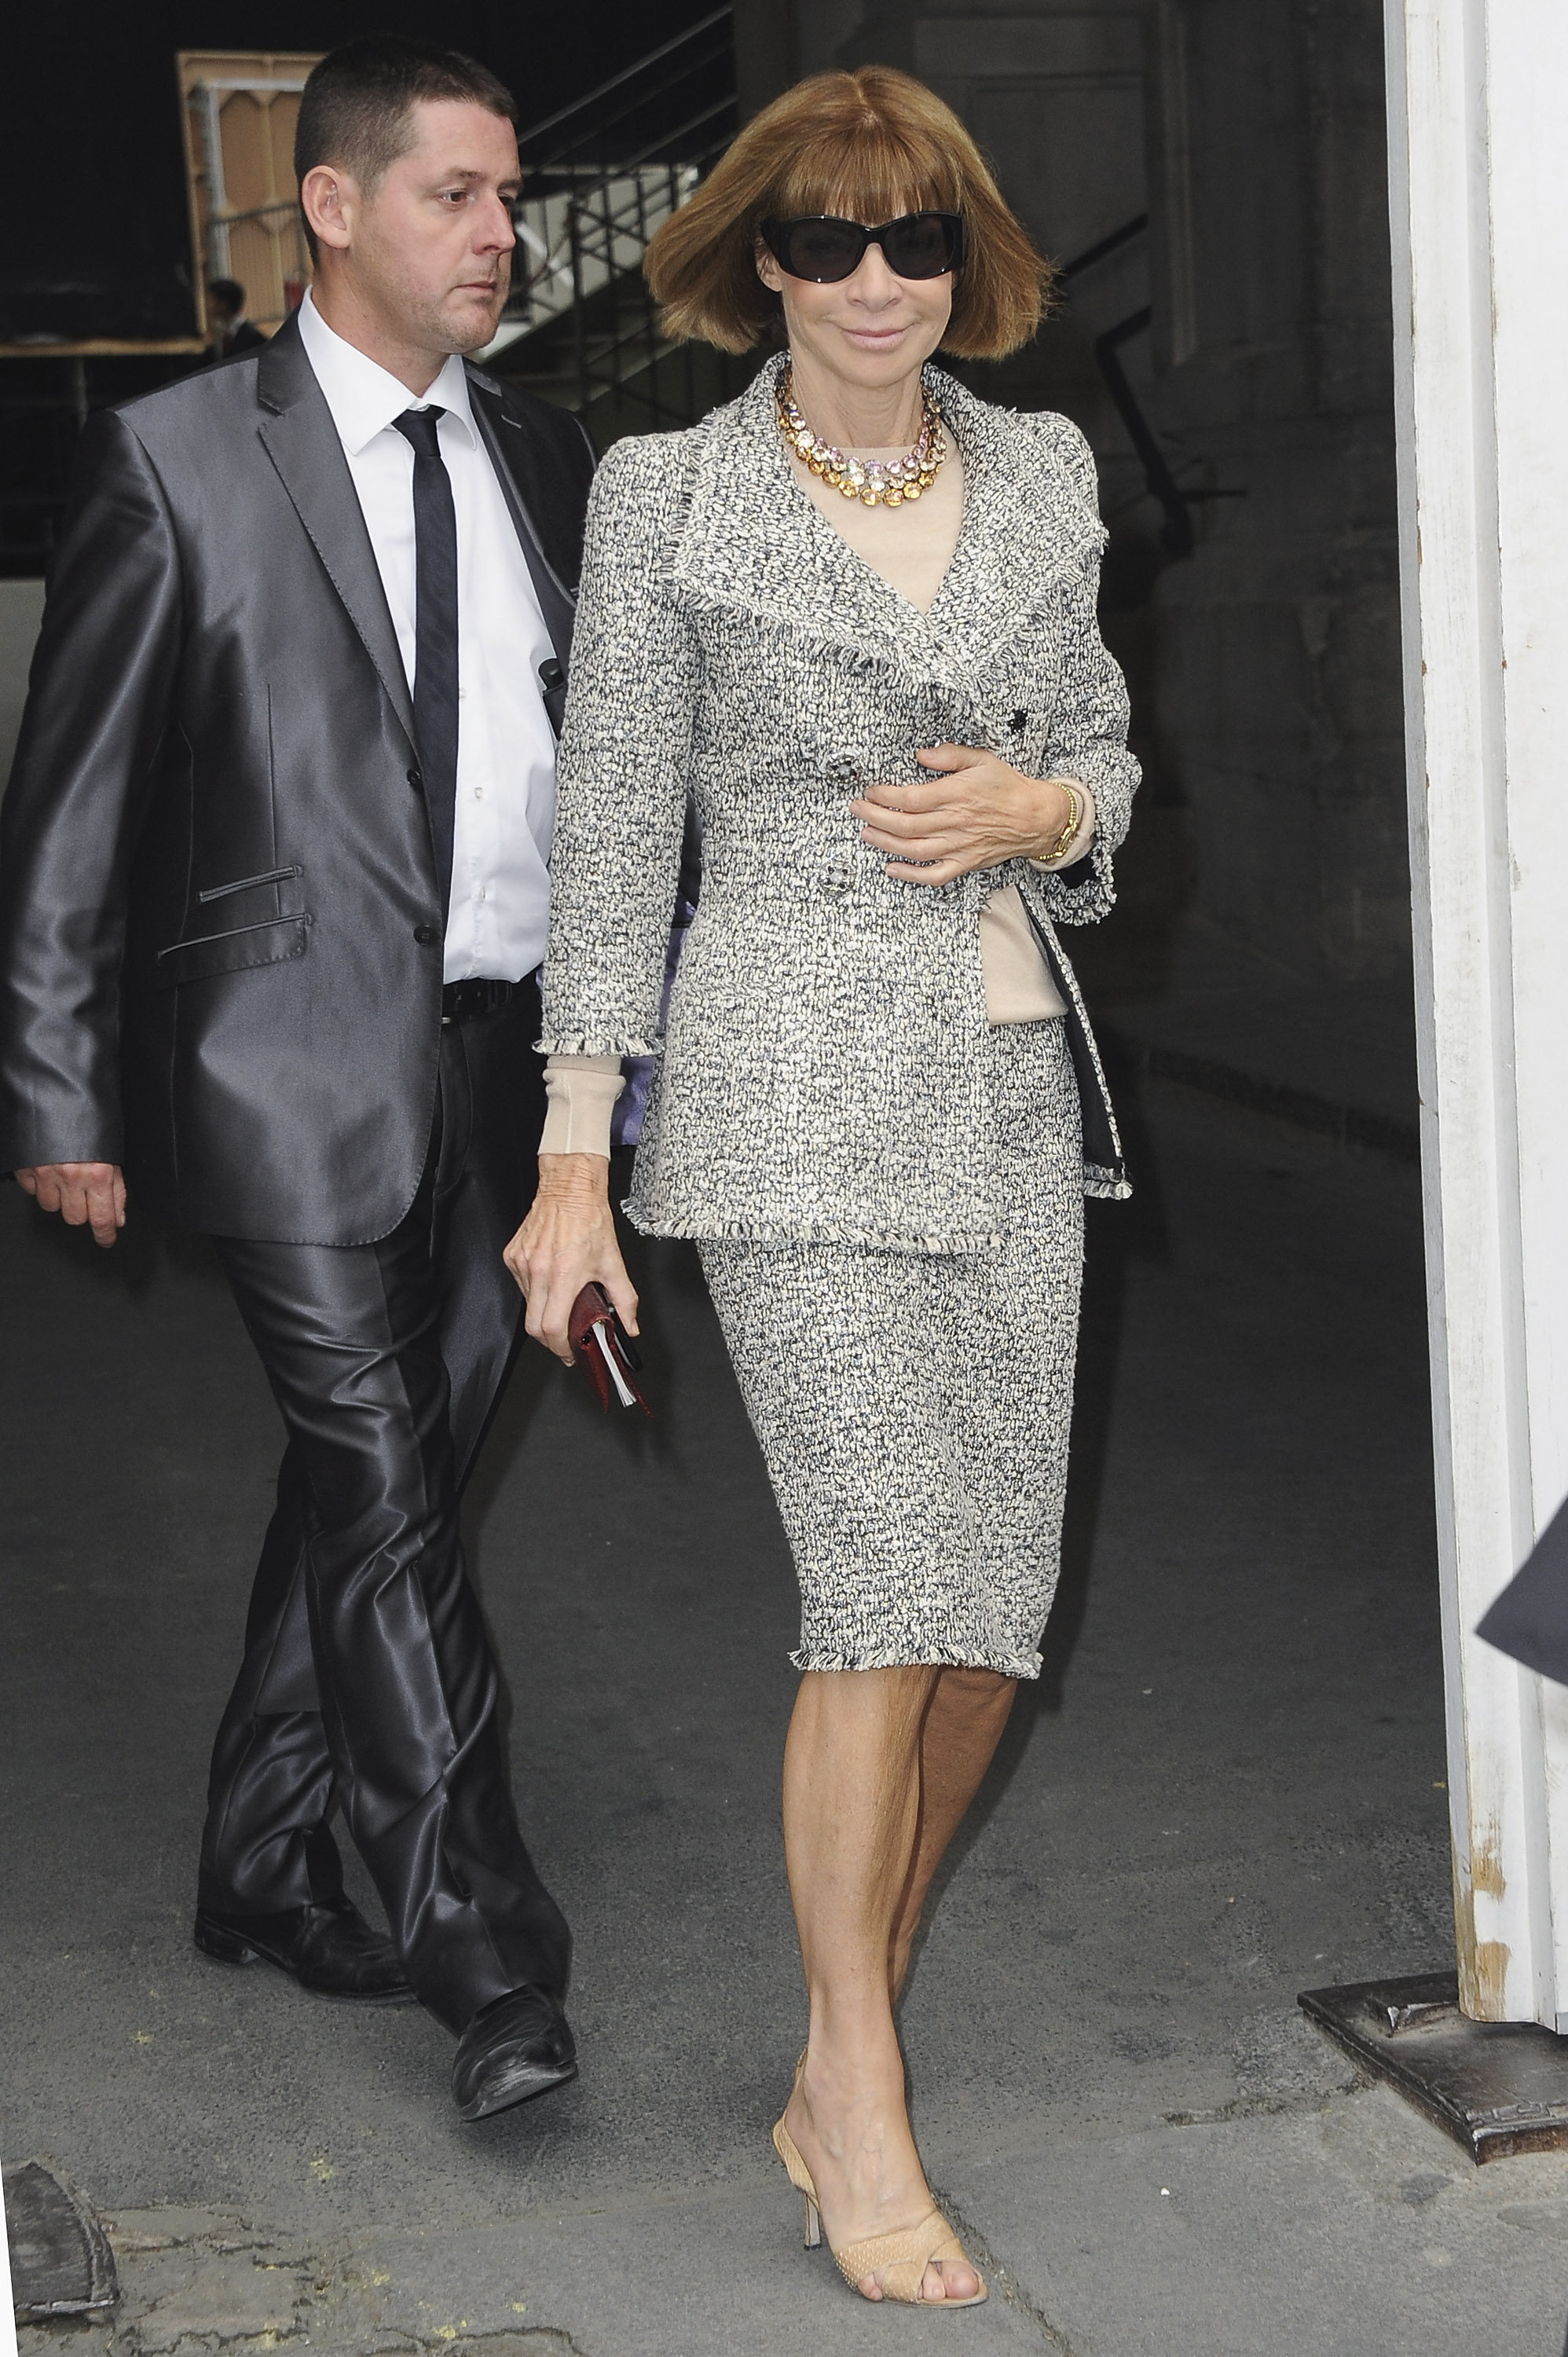 Anna Wintour at Paris Fashion Week.